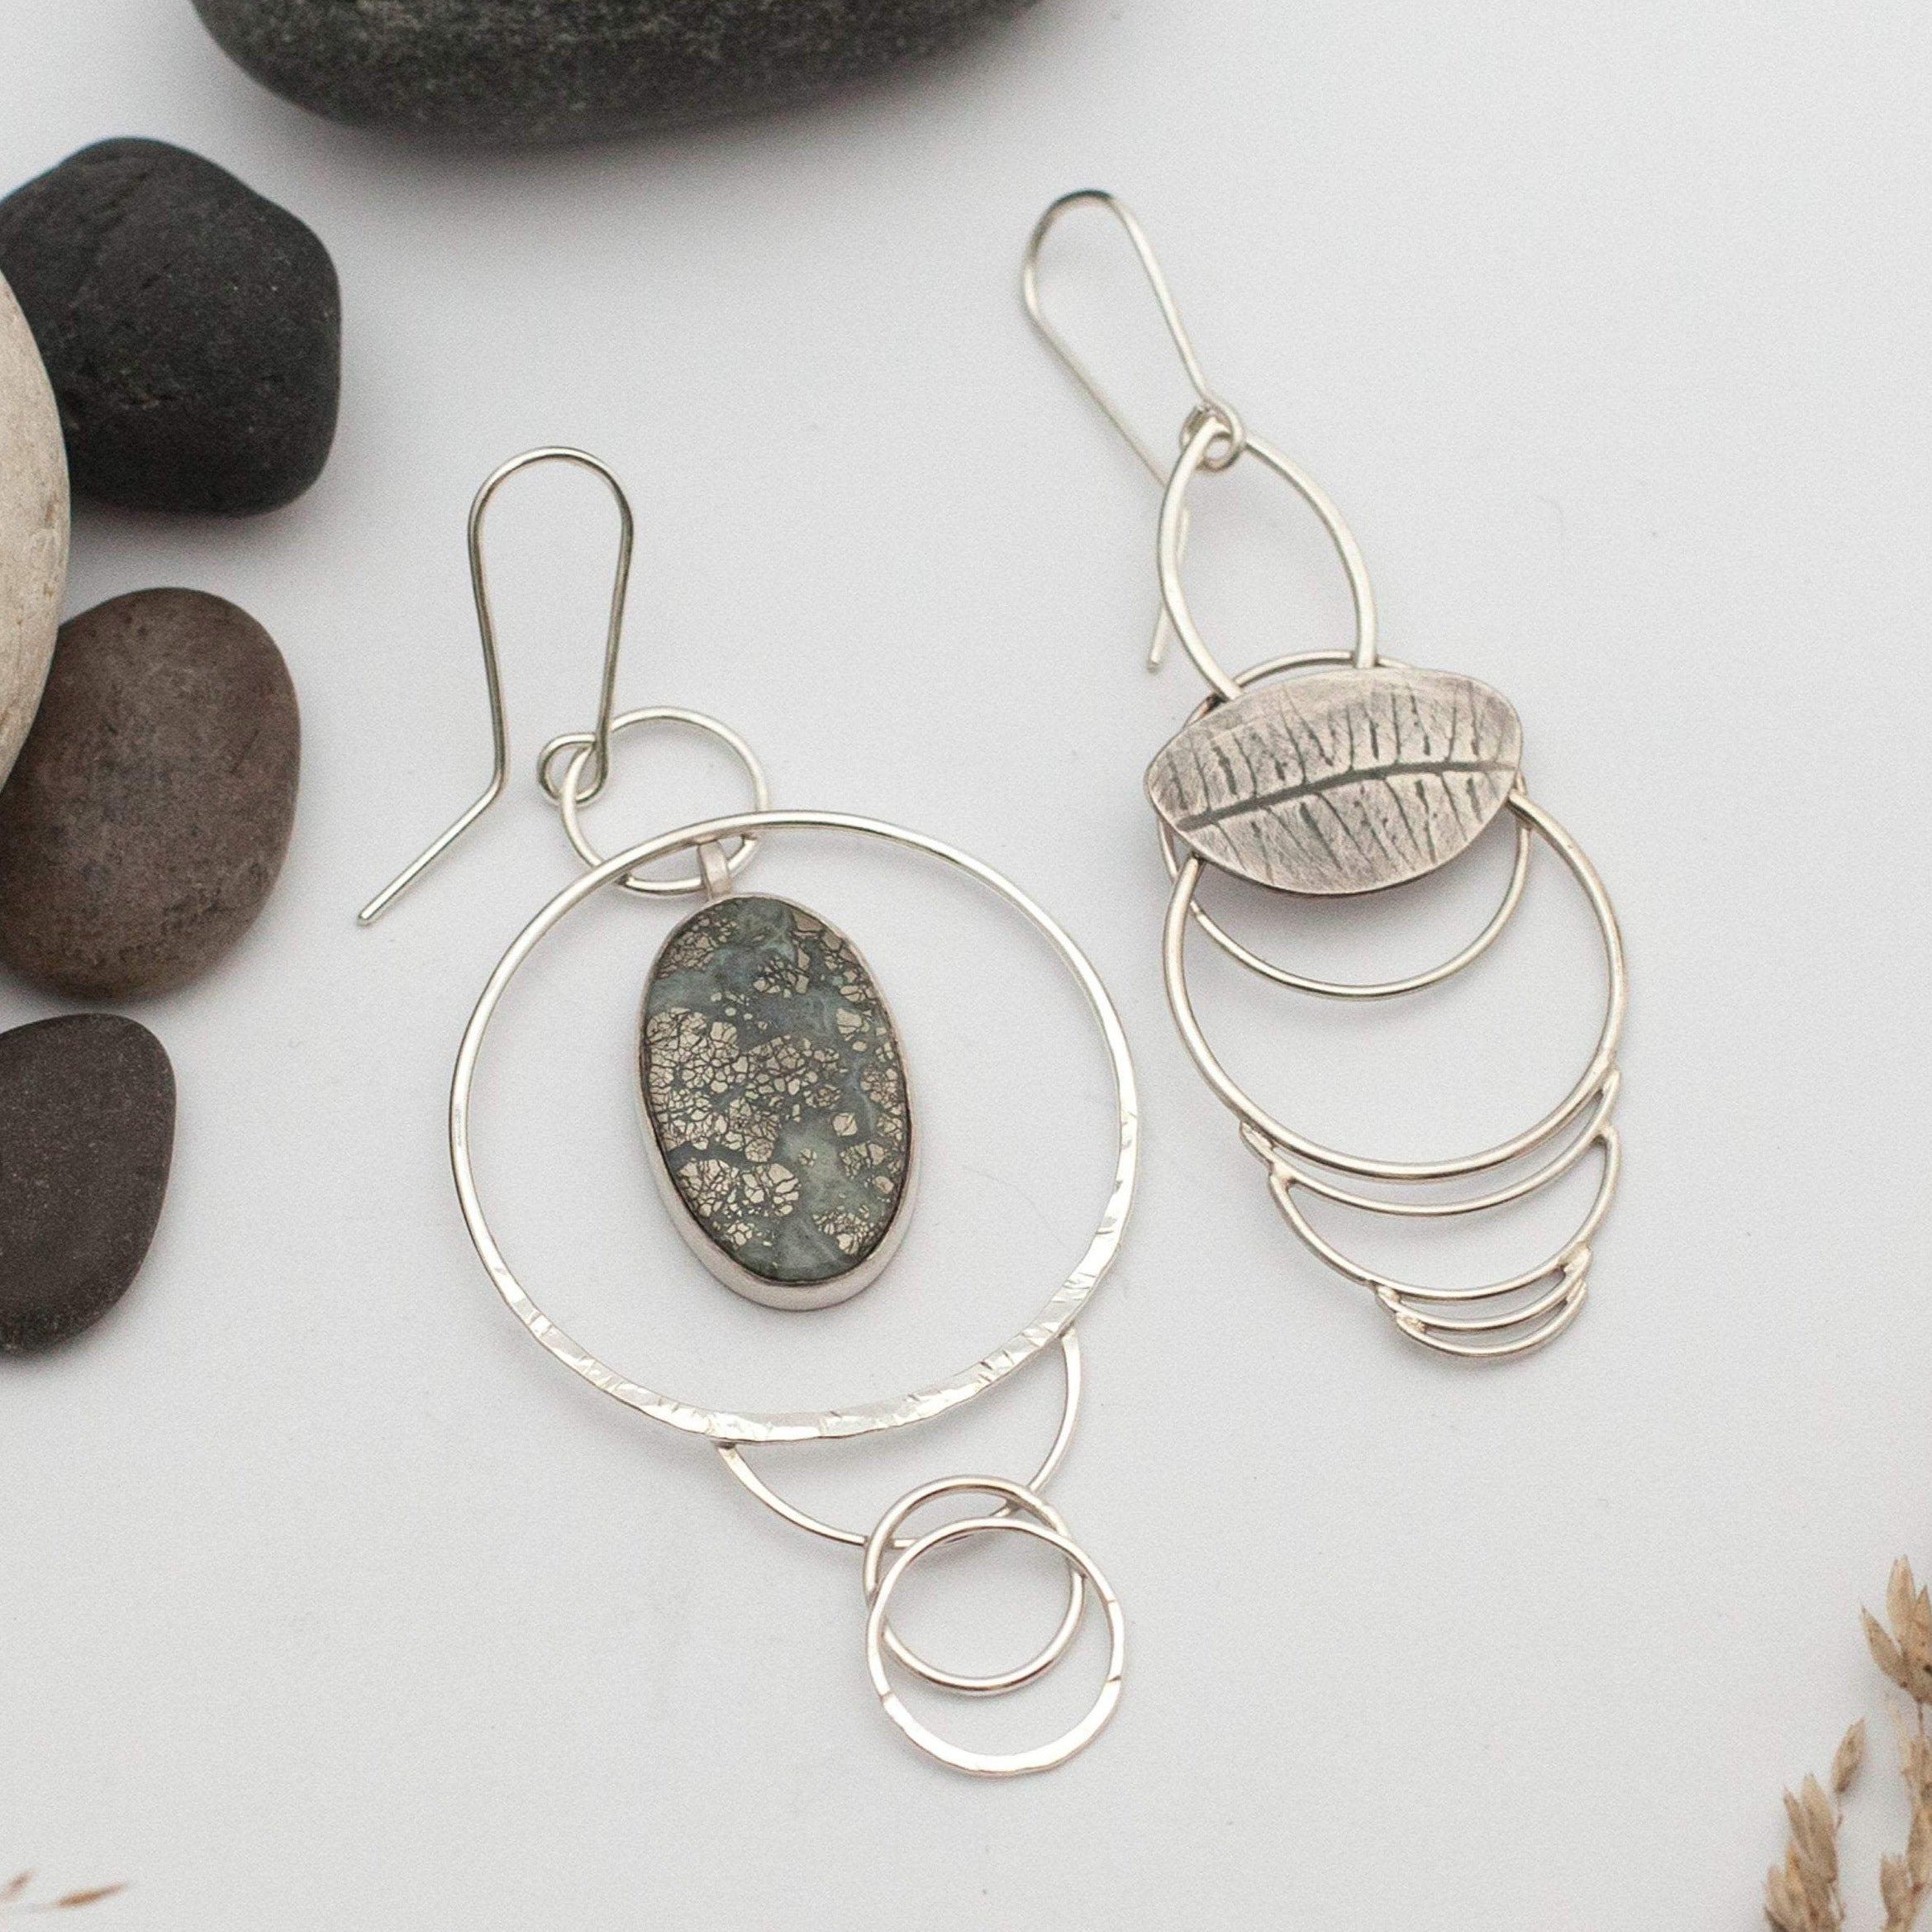 OOAK • Asymmetrical earrings in silver with pyrite agate and fern imprint • ready to ship